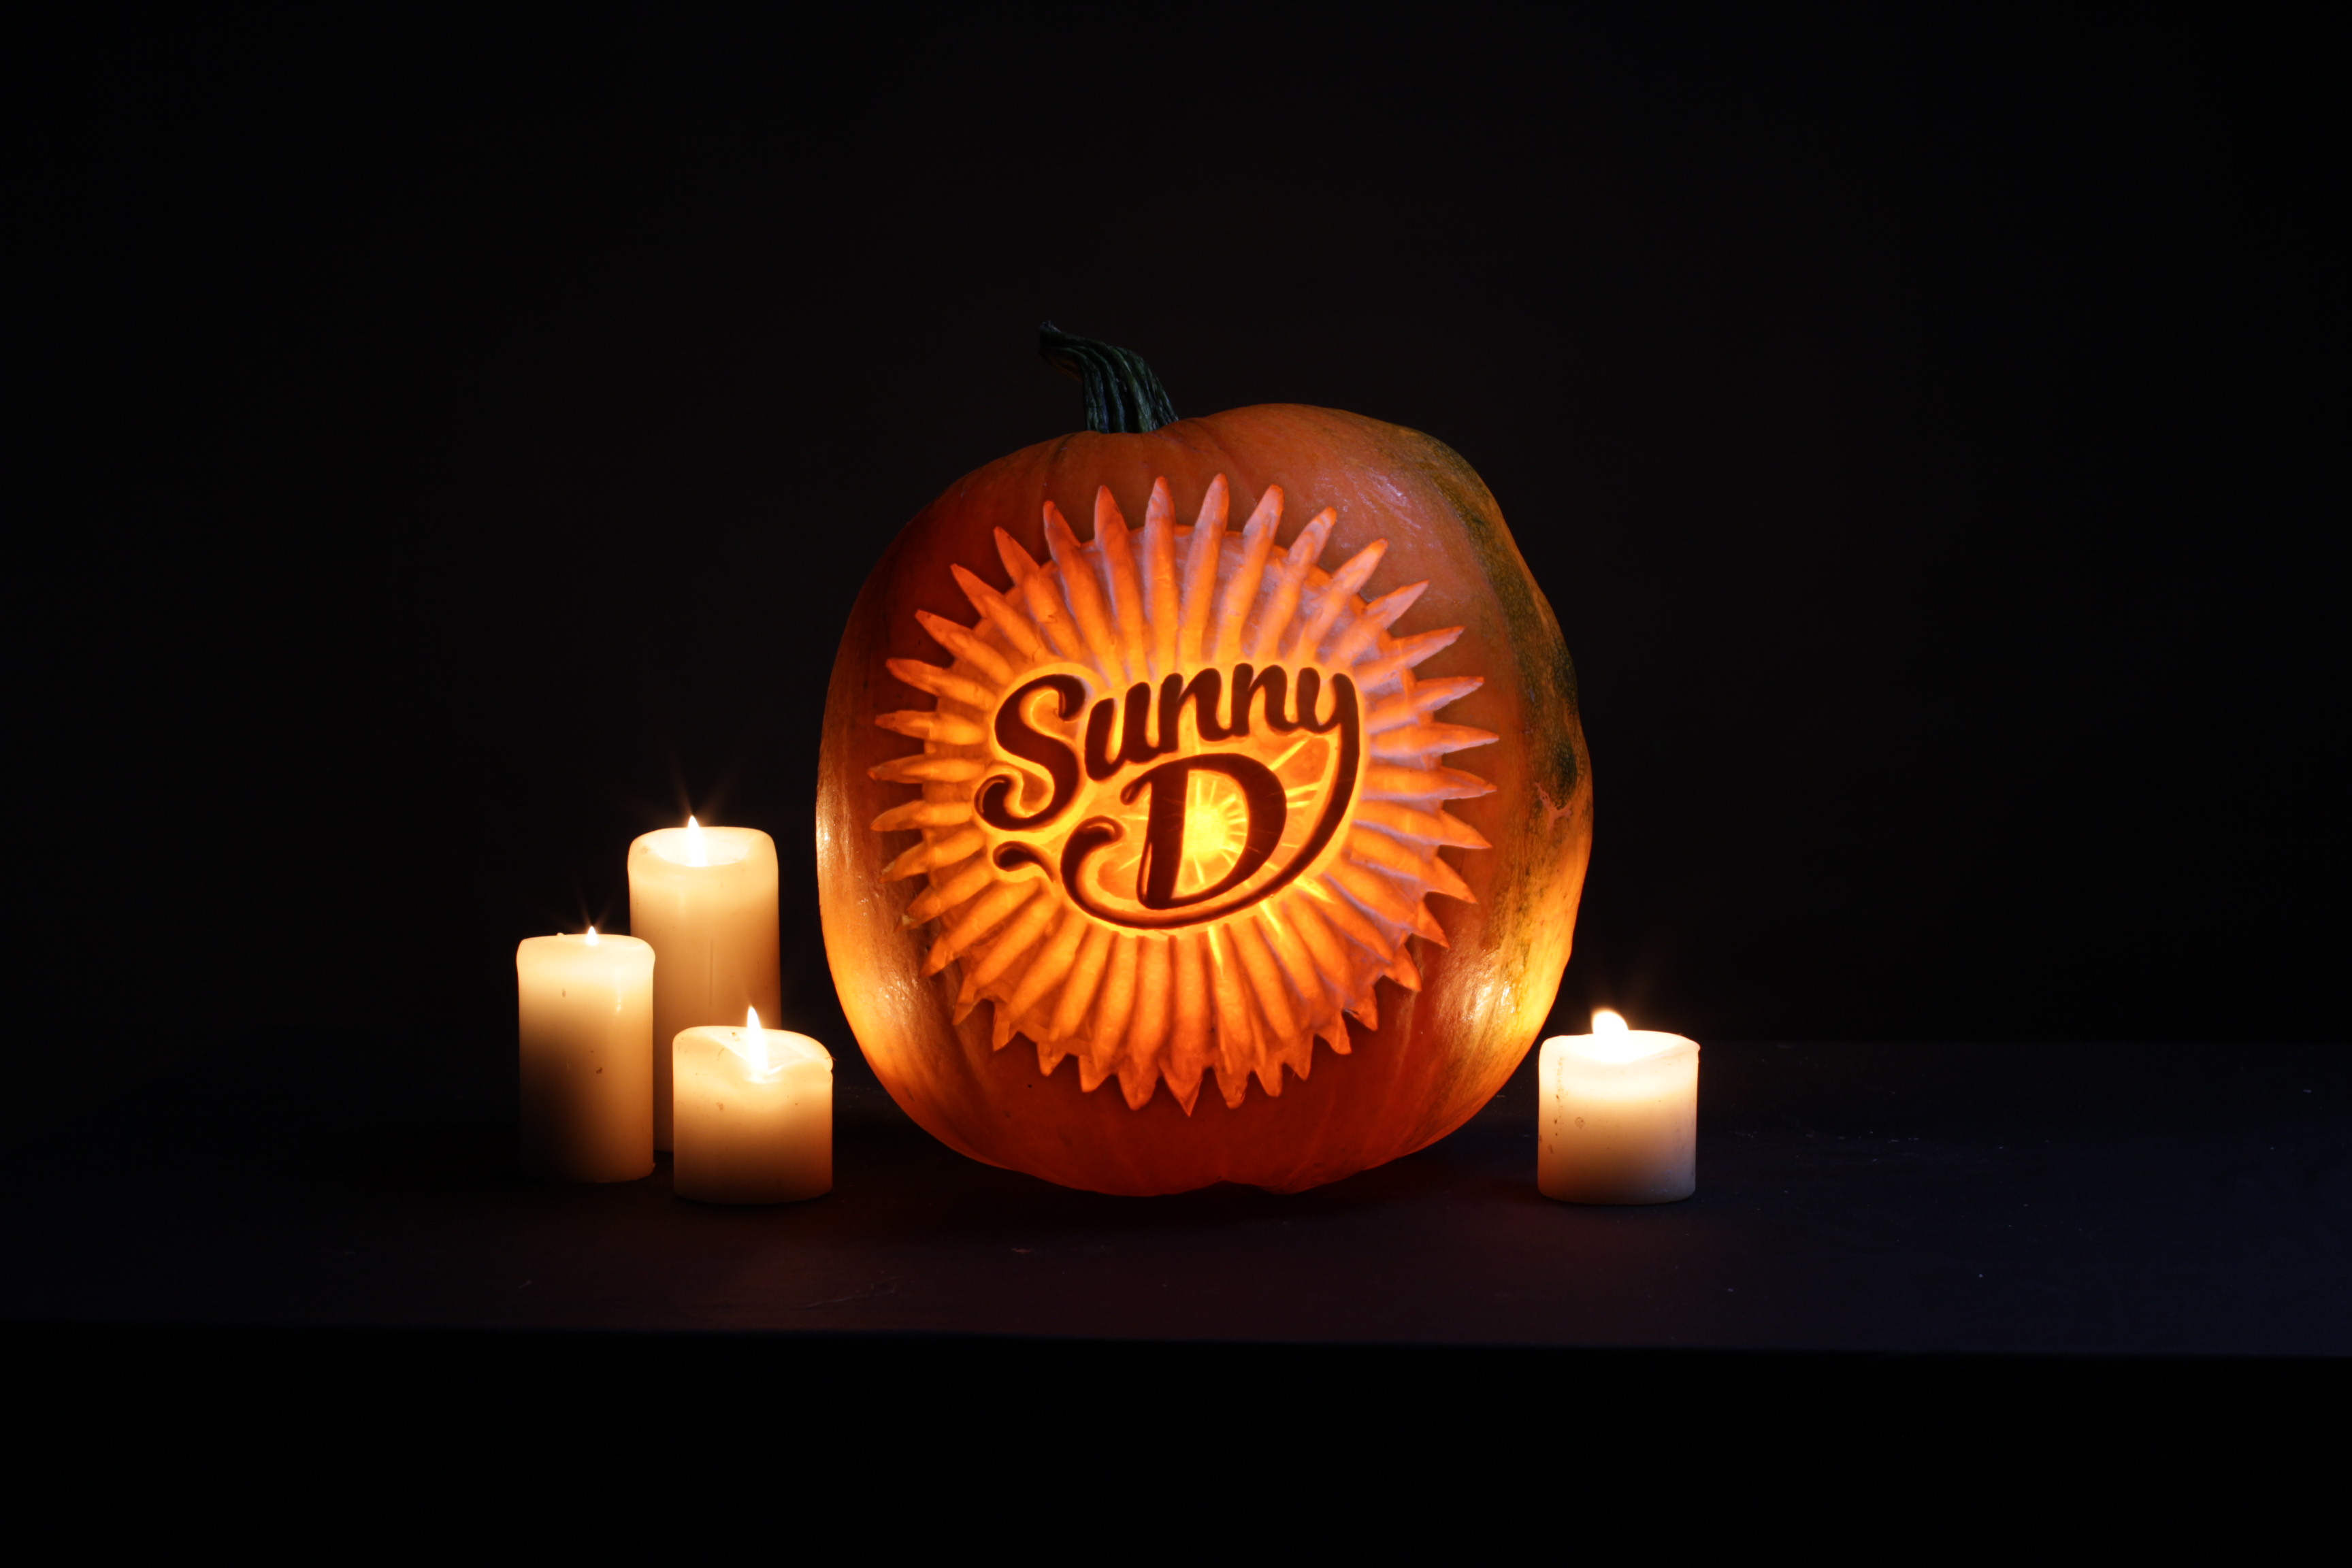 Sand In Your Eye pumpkin carvers create logo pumpkin carving